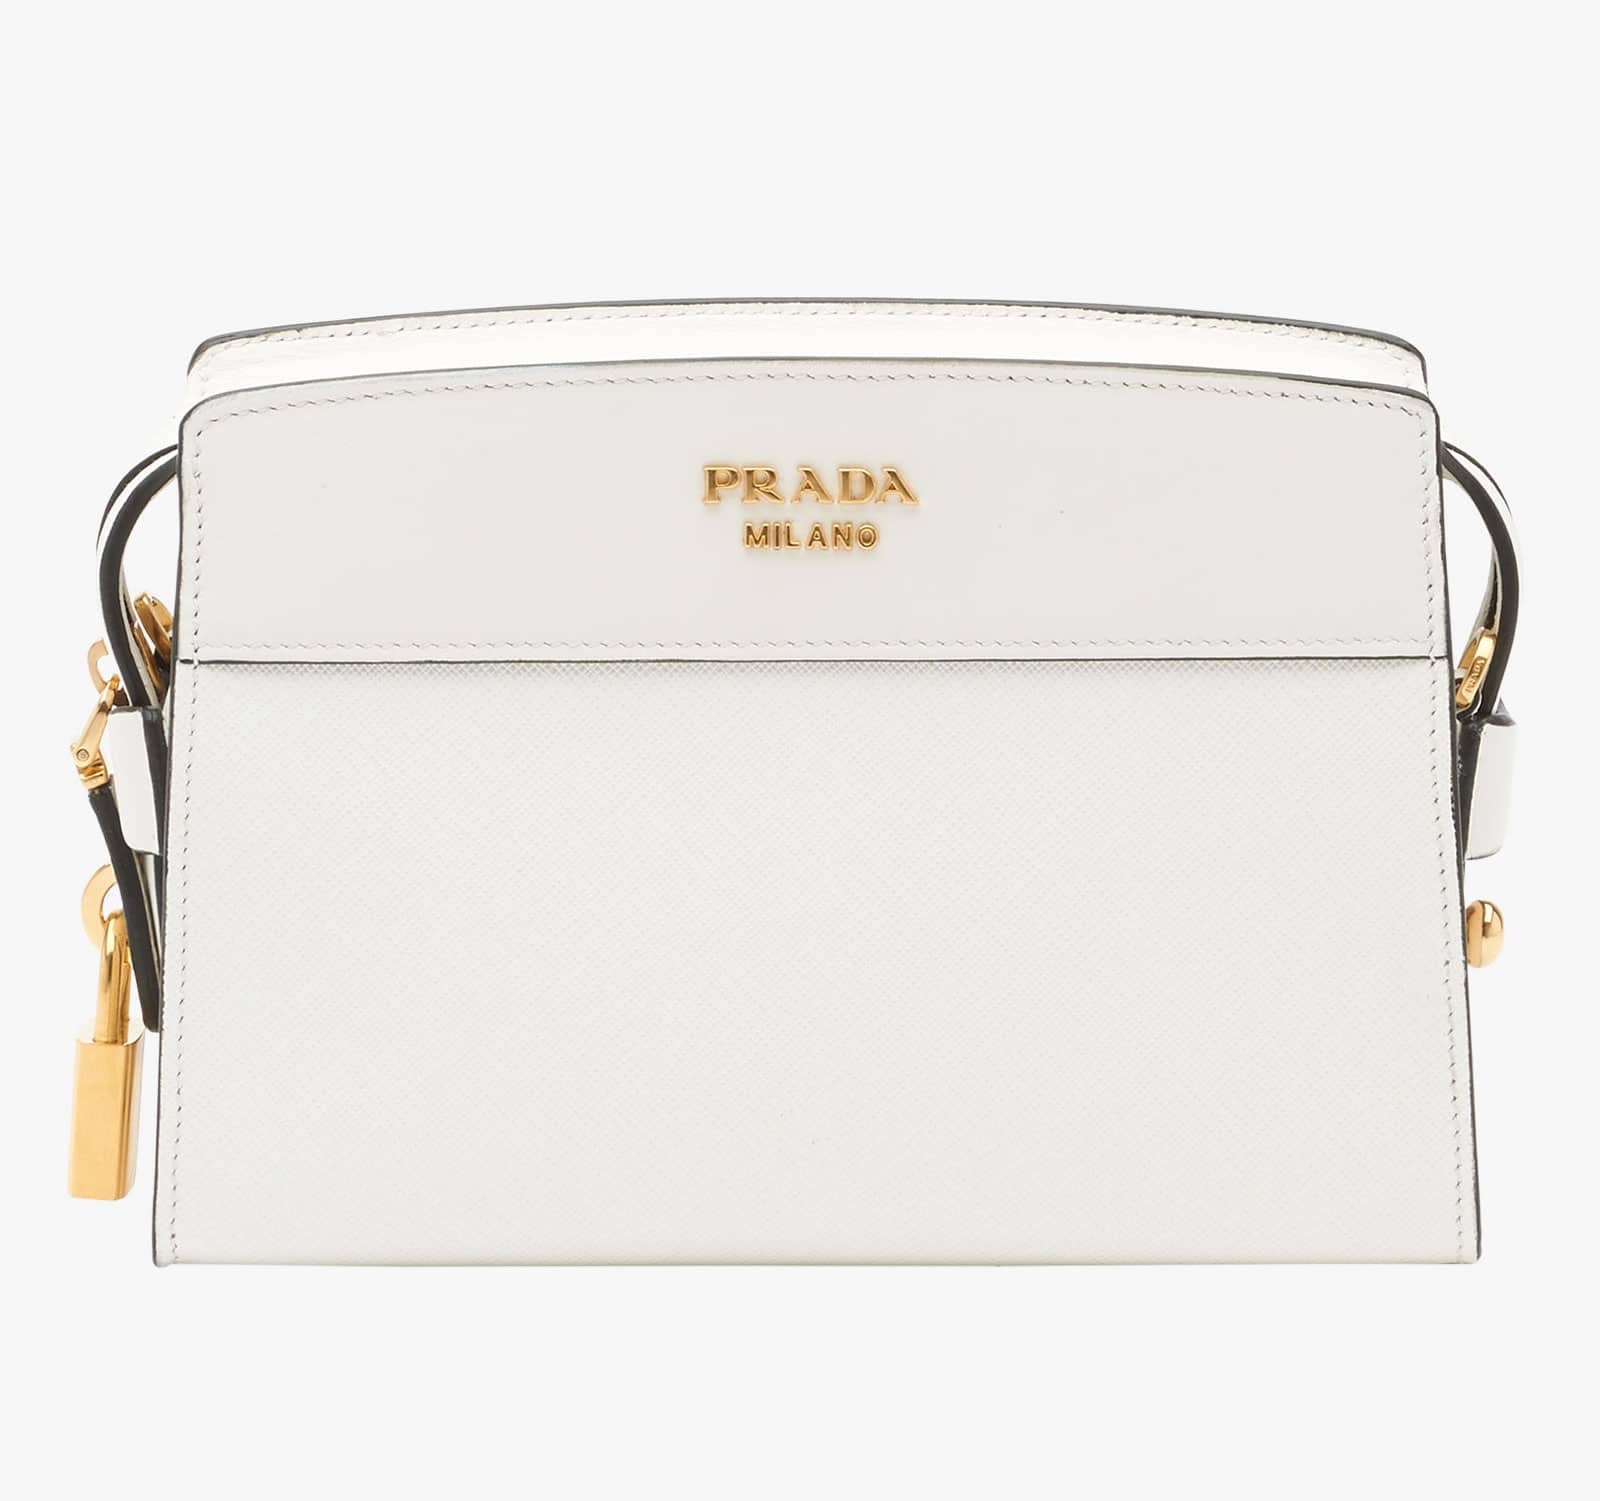 prada crocodile bag - Prada Esplanade Bag Reference Guide | Spotted Fashion